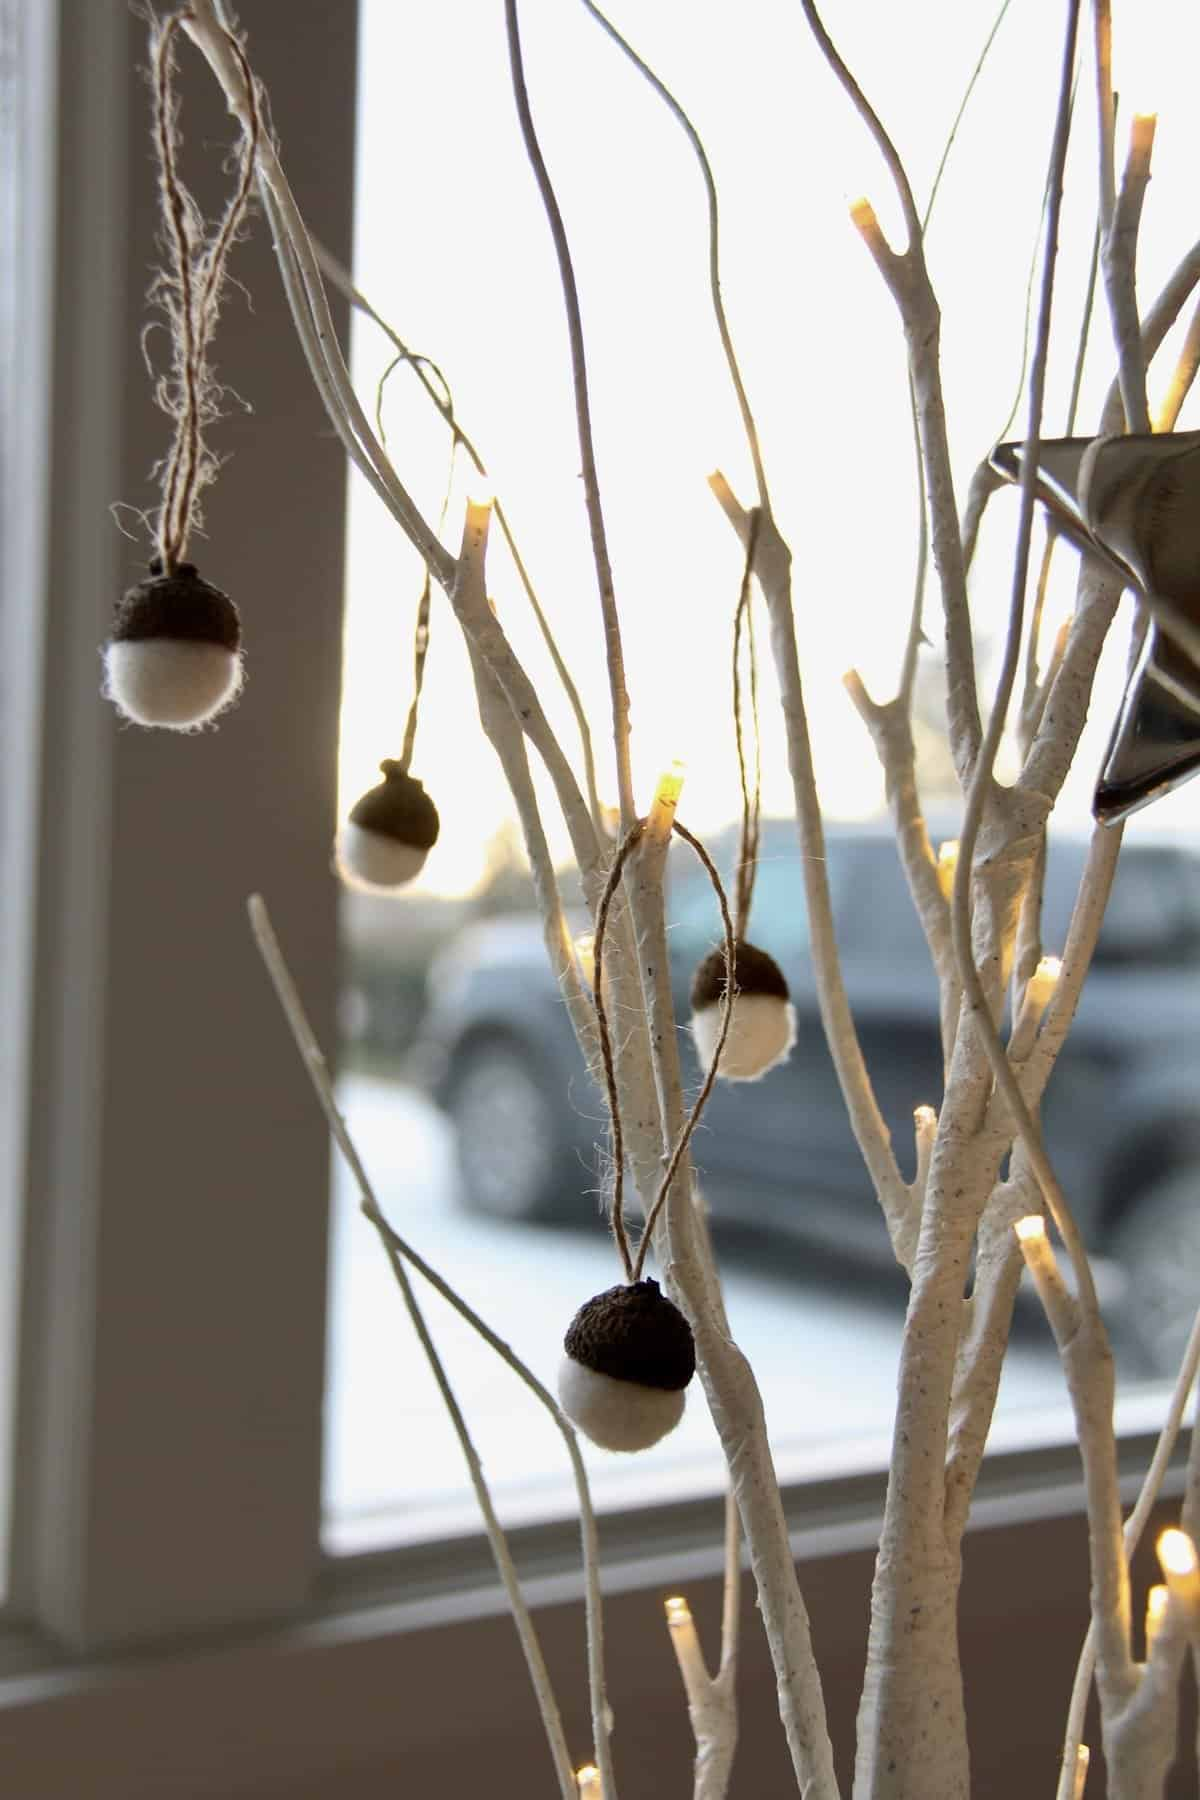 SO cute! Here's how to make these adorable wool acorn Christmas ornaments. These are the perfect natural Christmas ornaments to DIY this year. #woolacorns #woollenacorns #wetfeltedacorns #wetfelting